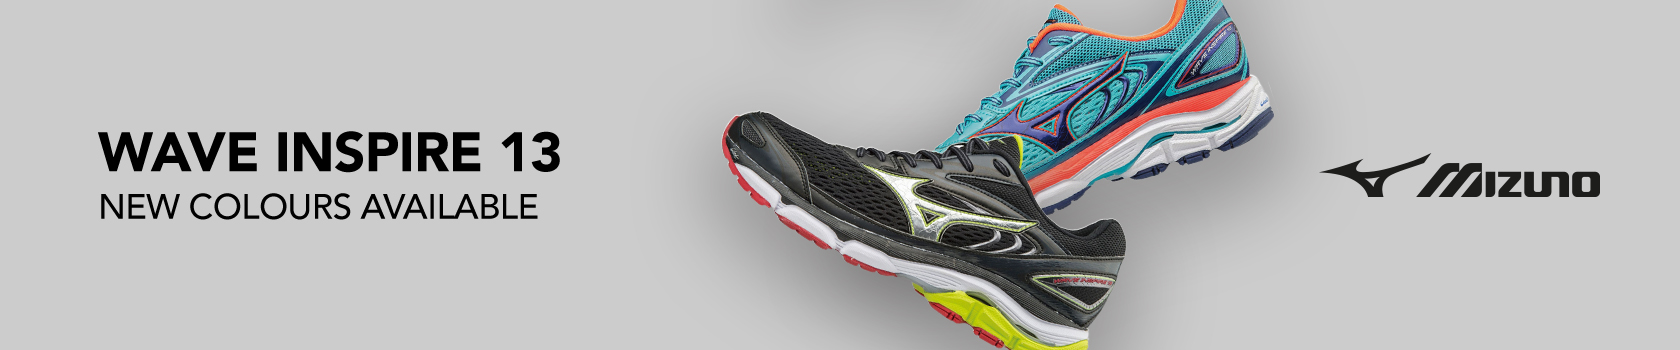 Mizuno's wave inspire 13 trainer is now available in new colours